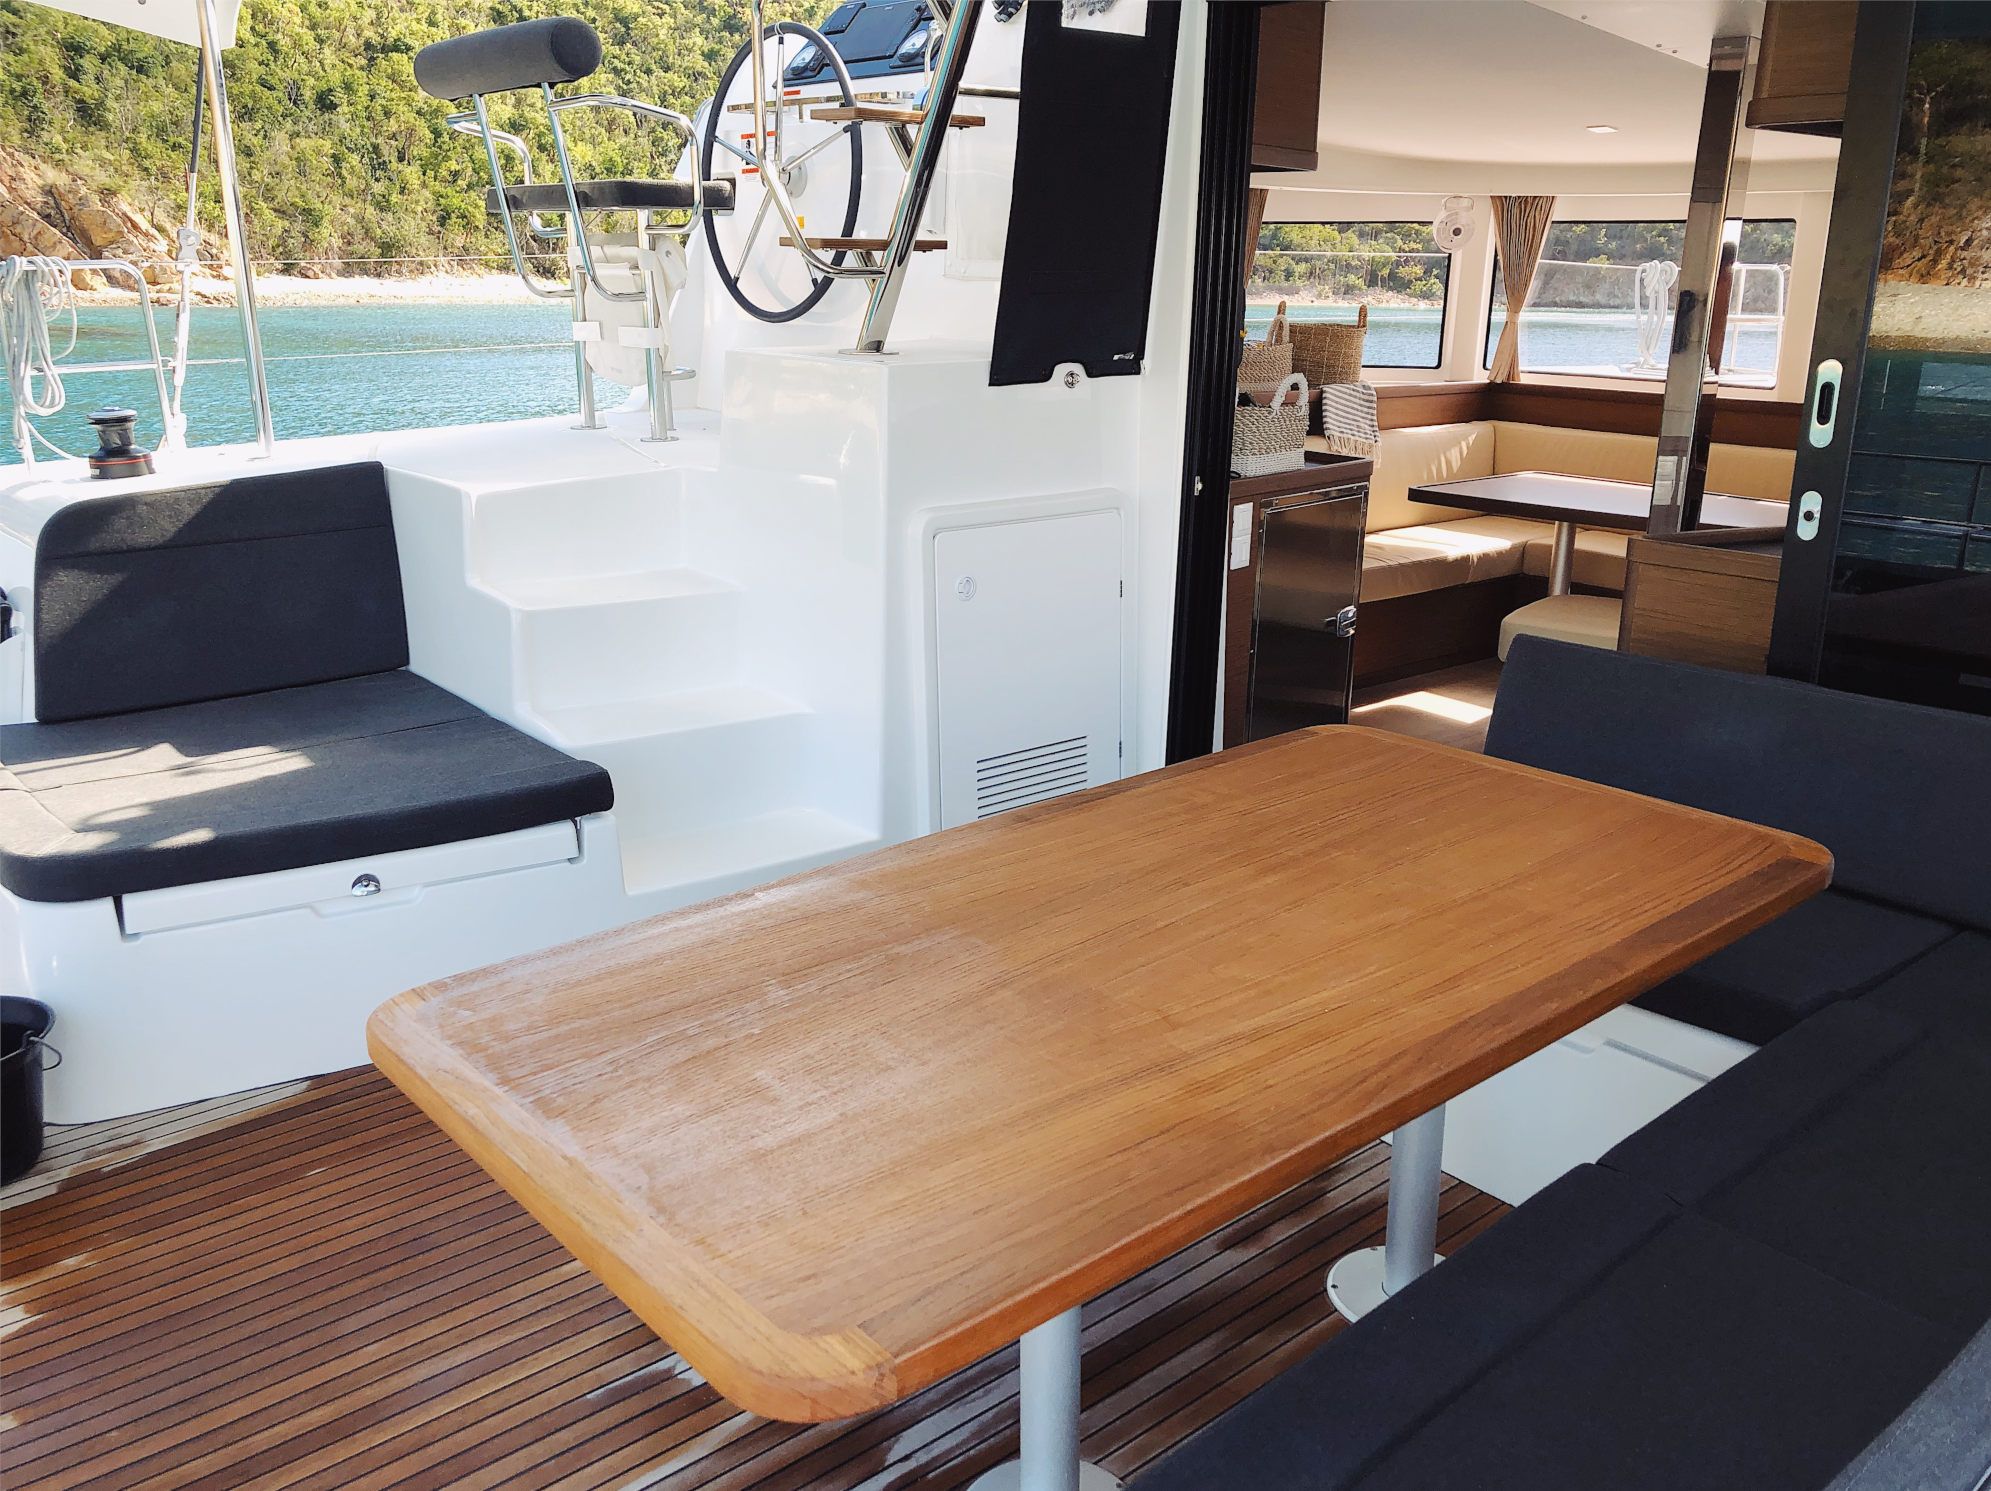 luxurious Luxurious sleeps 10 8 atleast comfortable 42' Lagoon lagoon 42 catamaran Catamaran Tortola TMM tmm